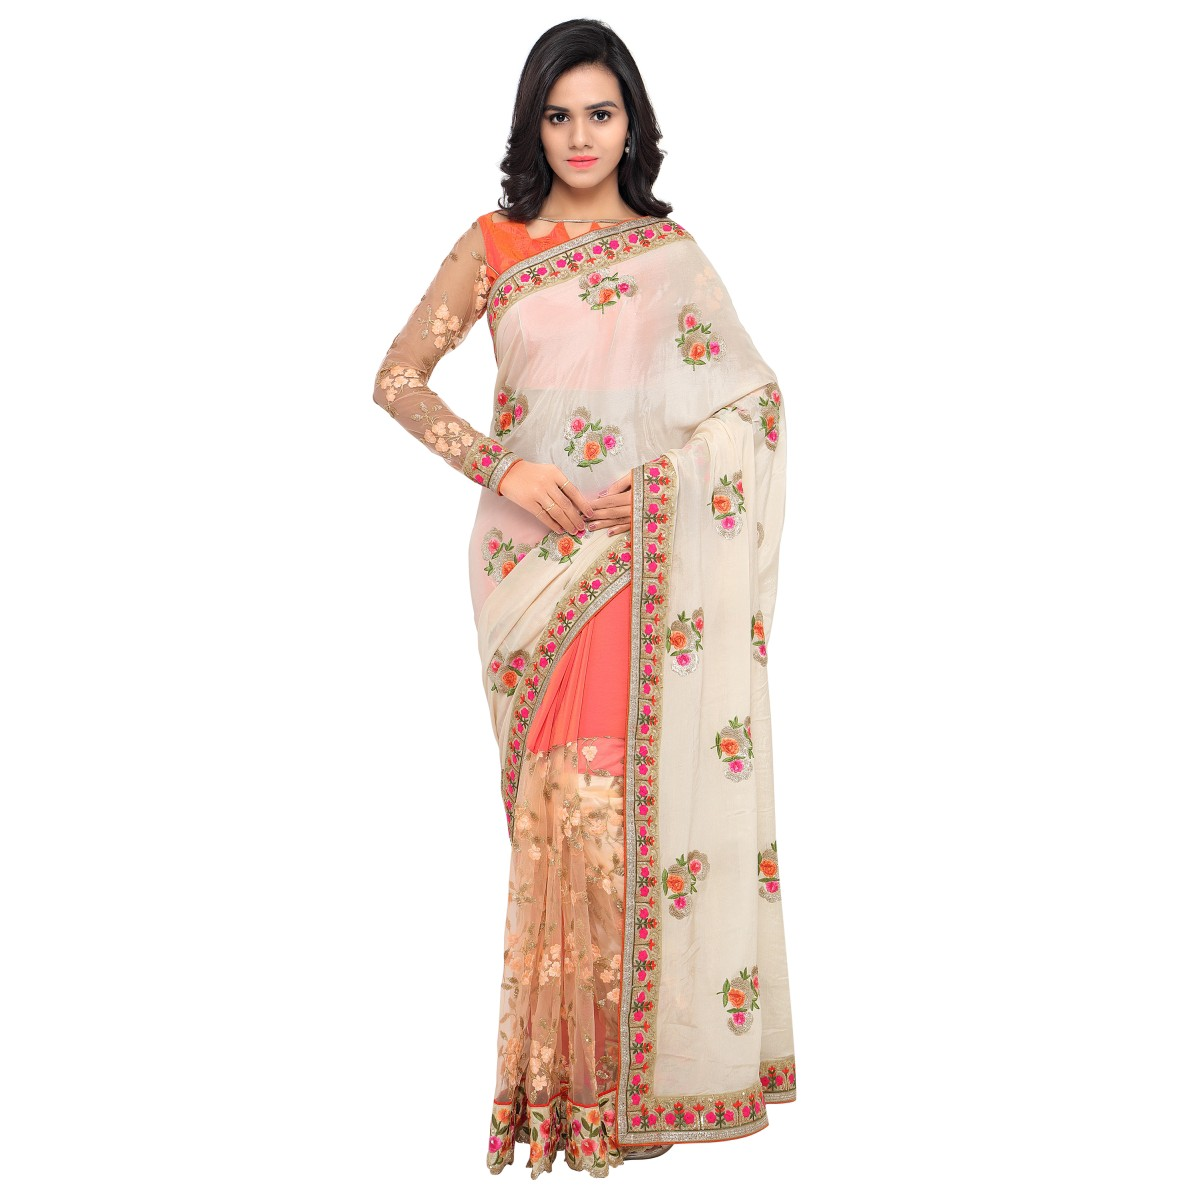 7 essential things to note when buying indian sarees online in singapore